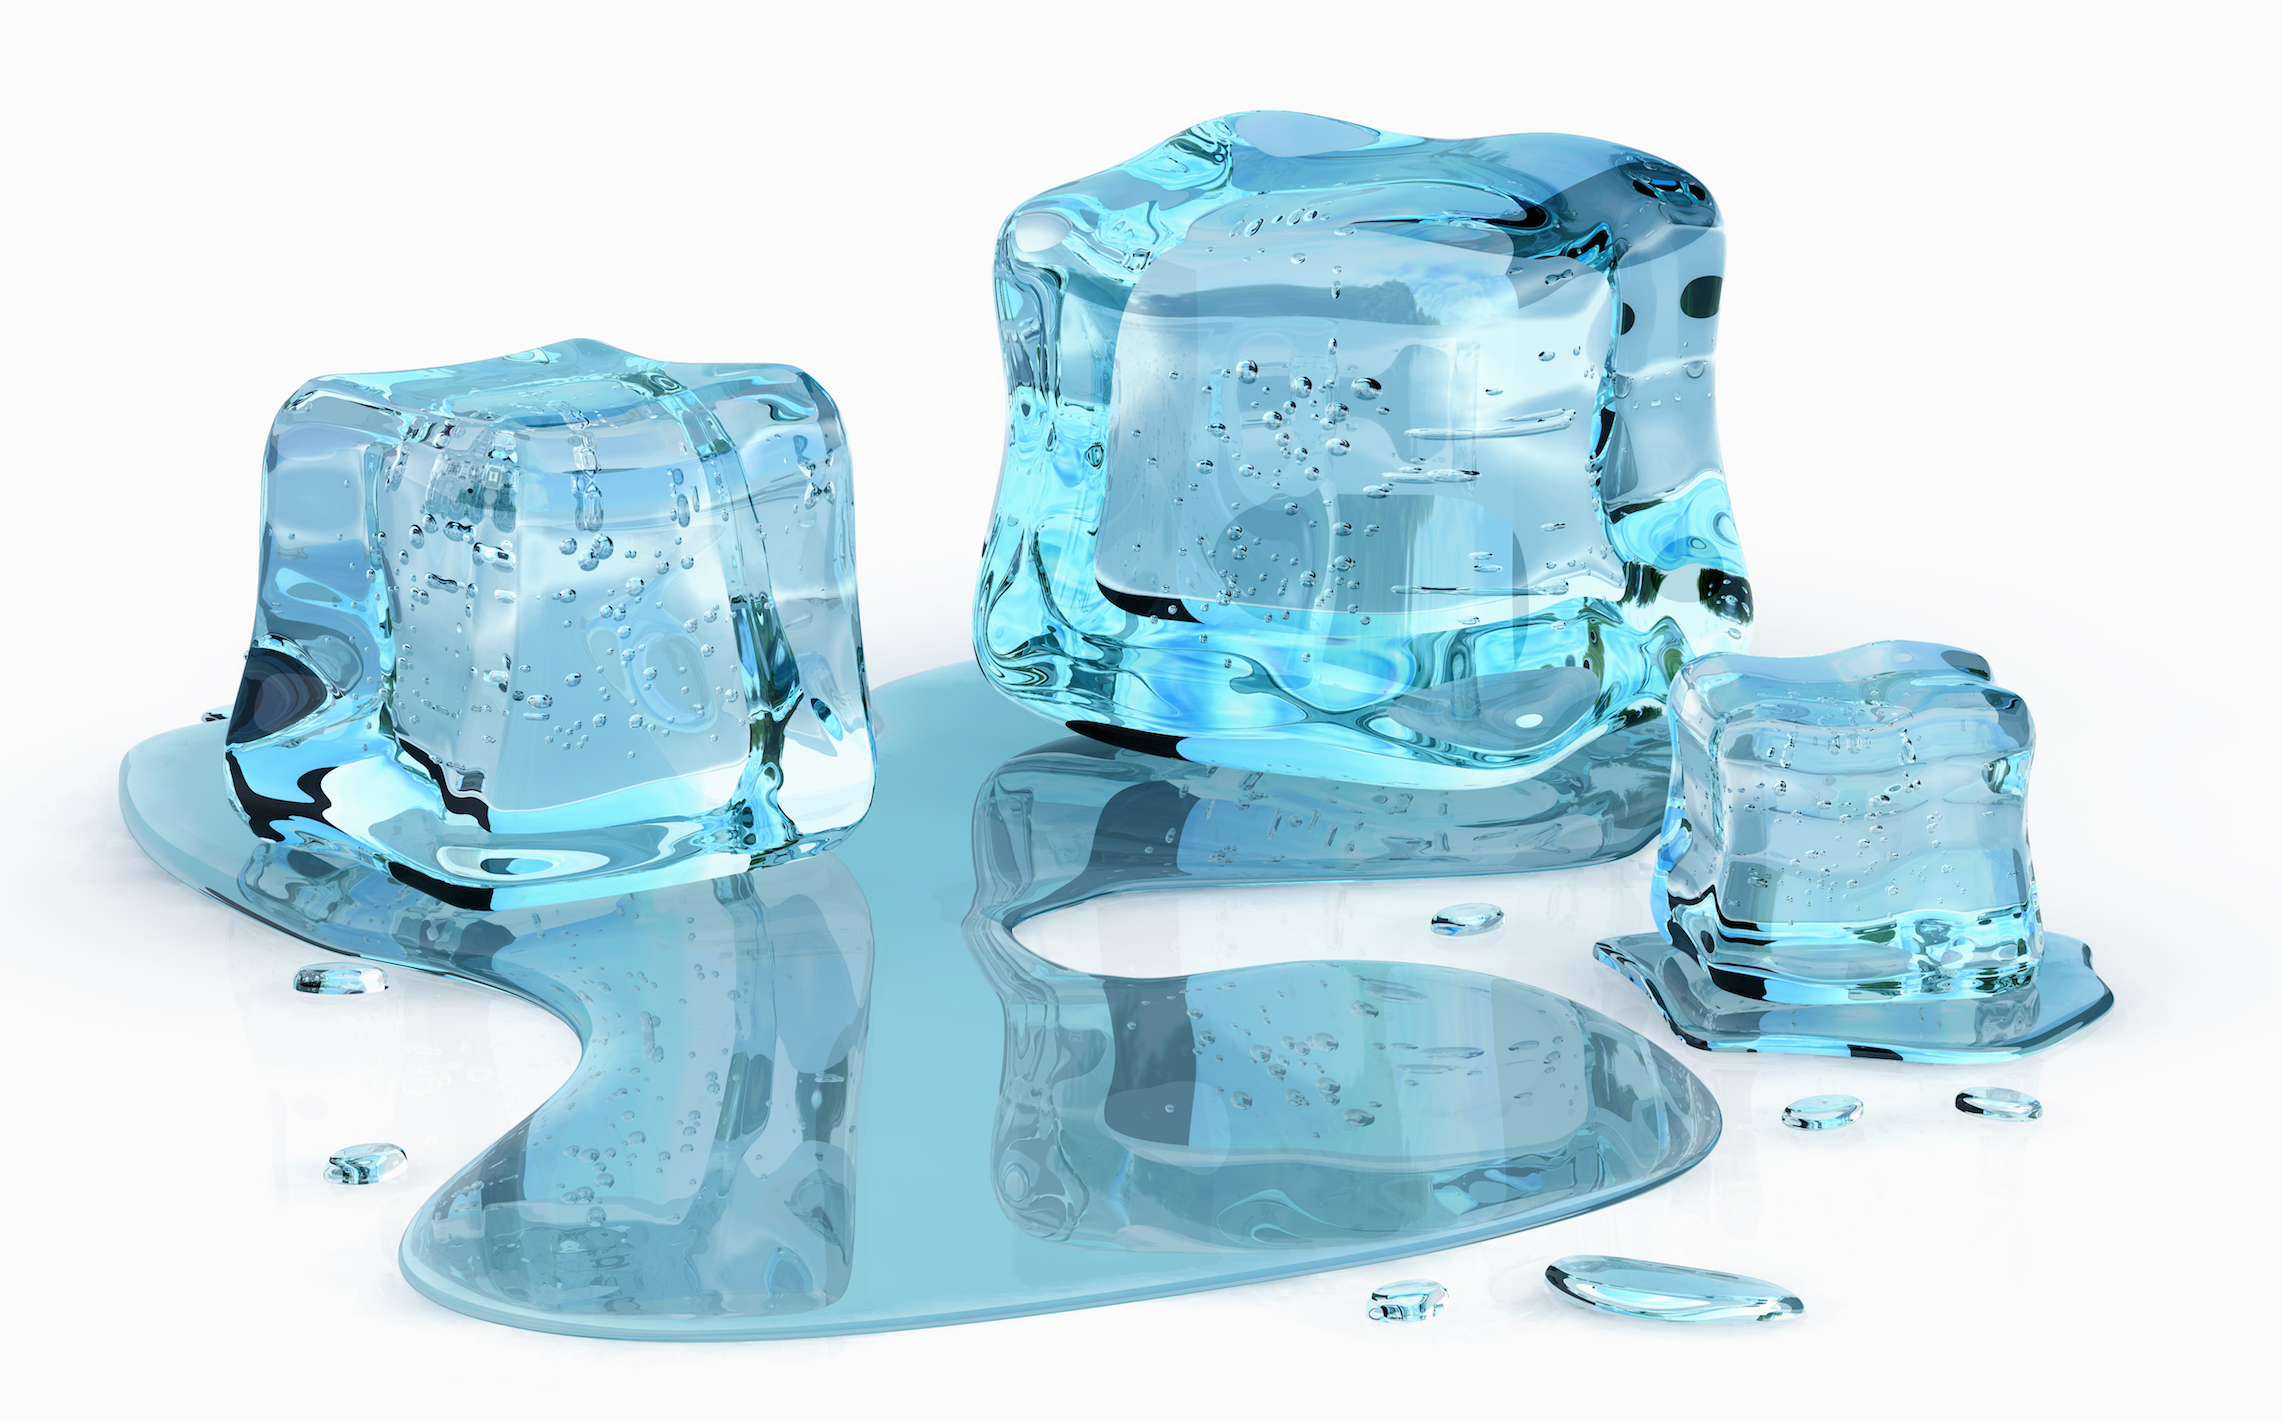 While the slipperiness of ice is common knowledge, it's not entirely understood from a science perspective.